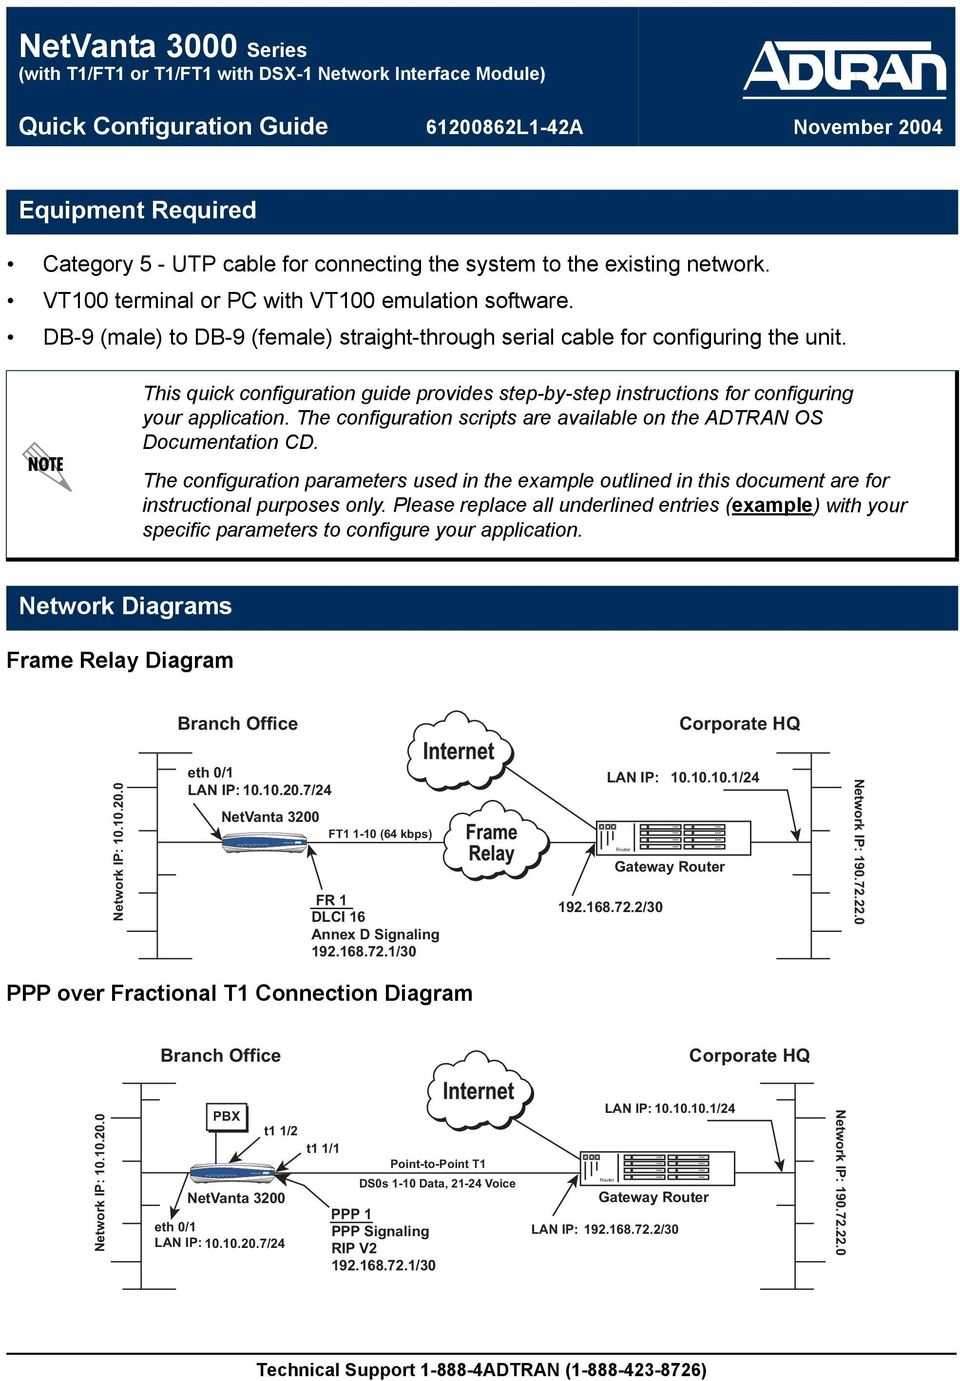 DB-9 (male) to DB-9 (female) straight-through serial cable for configuring the unit. This quick configuration guide provides step-by-step instructions for configuring your application.